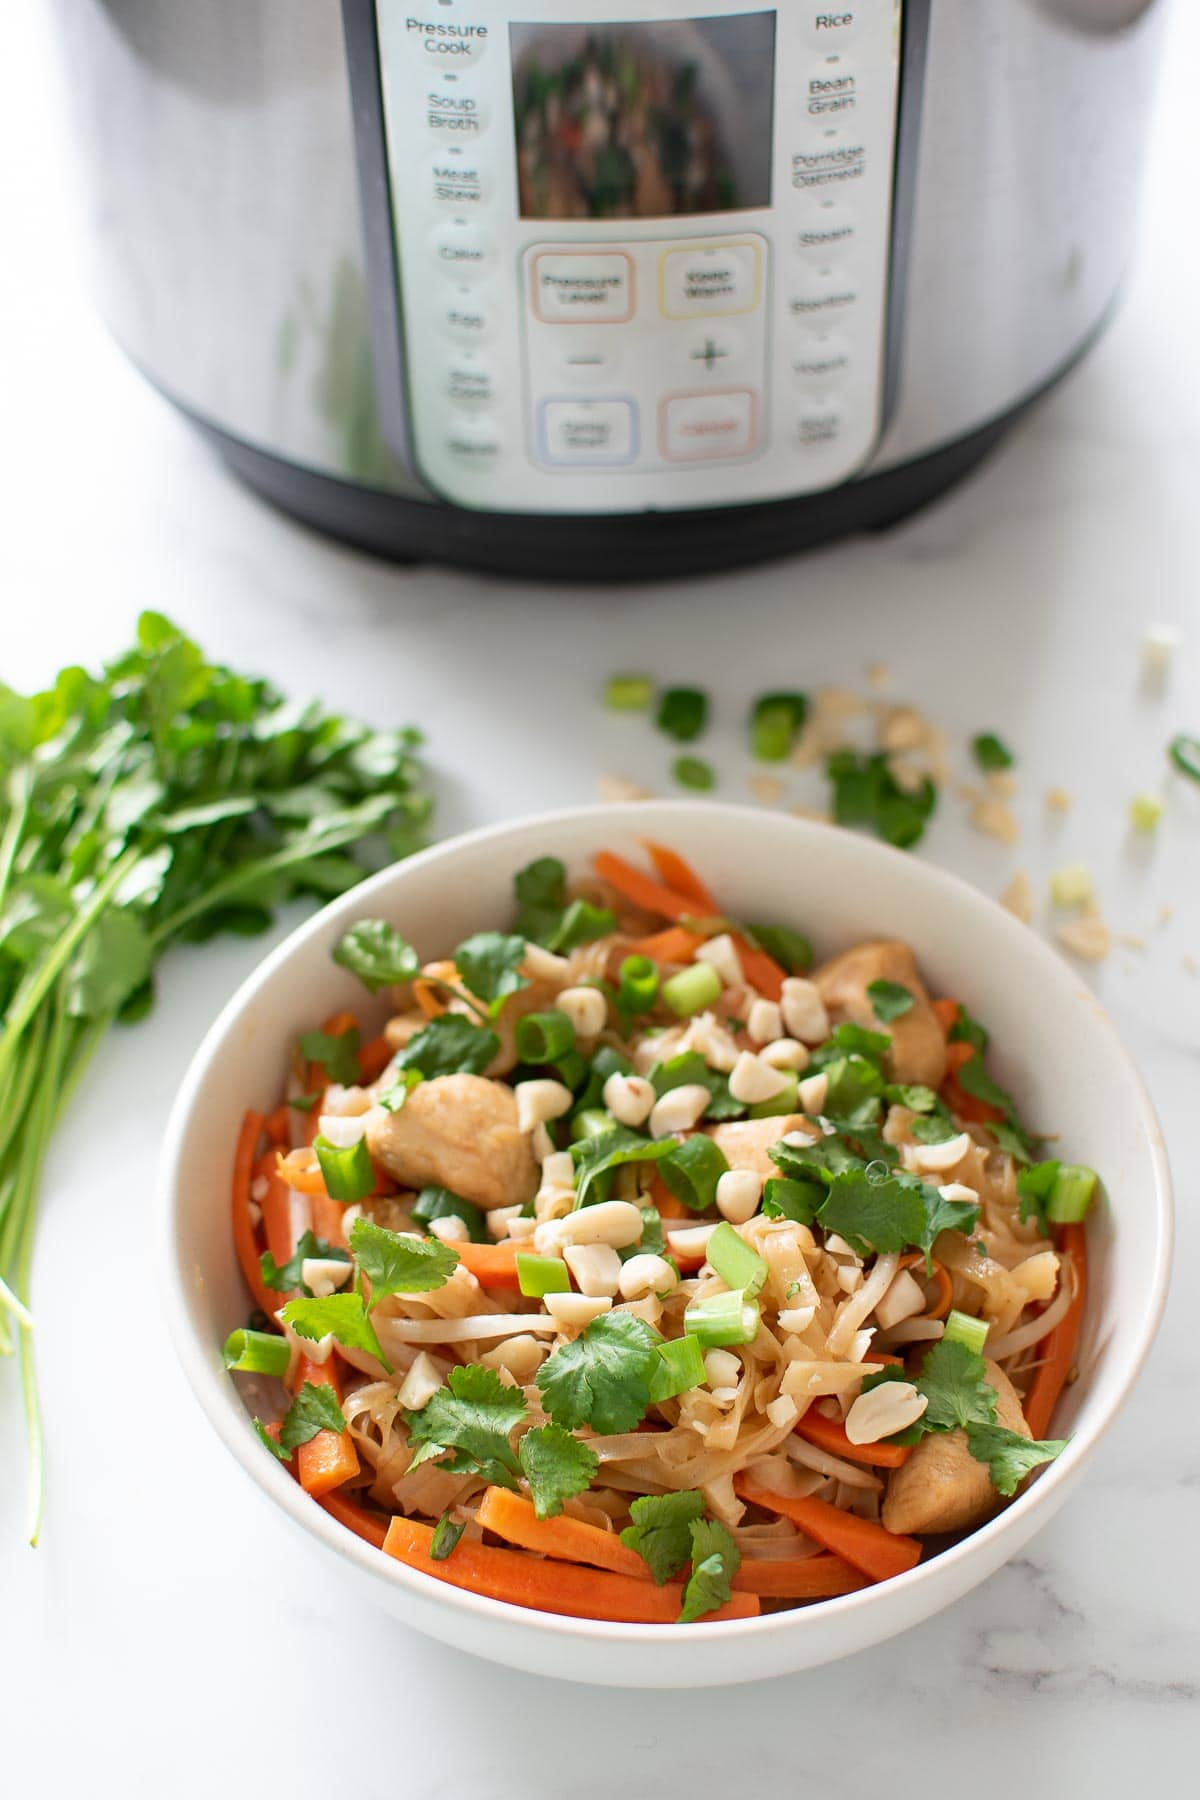 A bowl of pad thai in front of an Instant Pot.